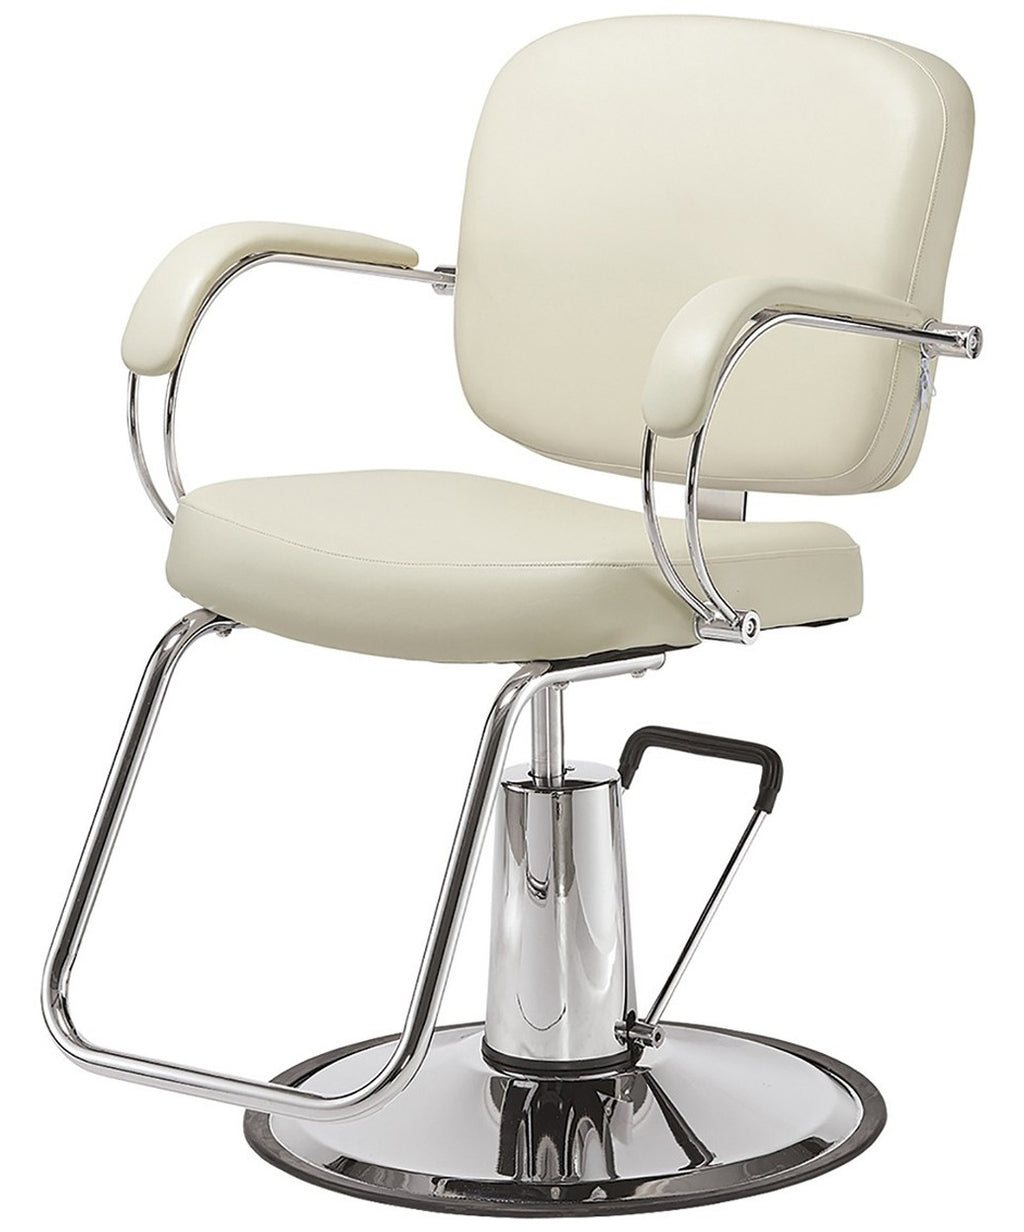 Pibbs Latina Styling Chair White 3/4 View